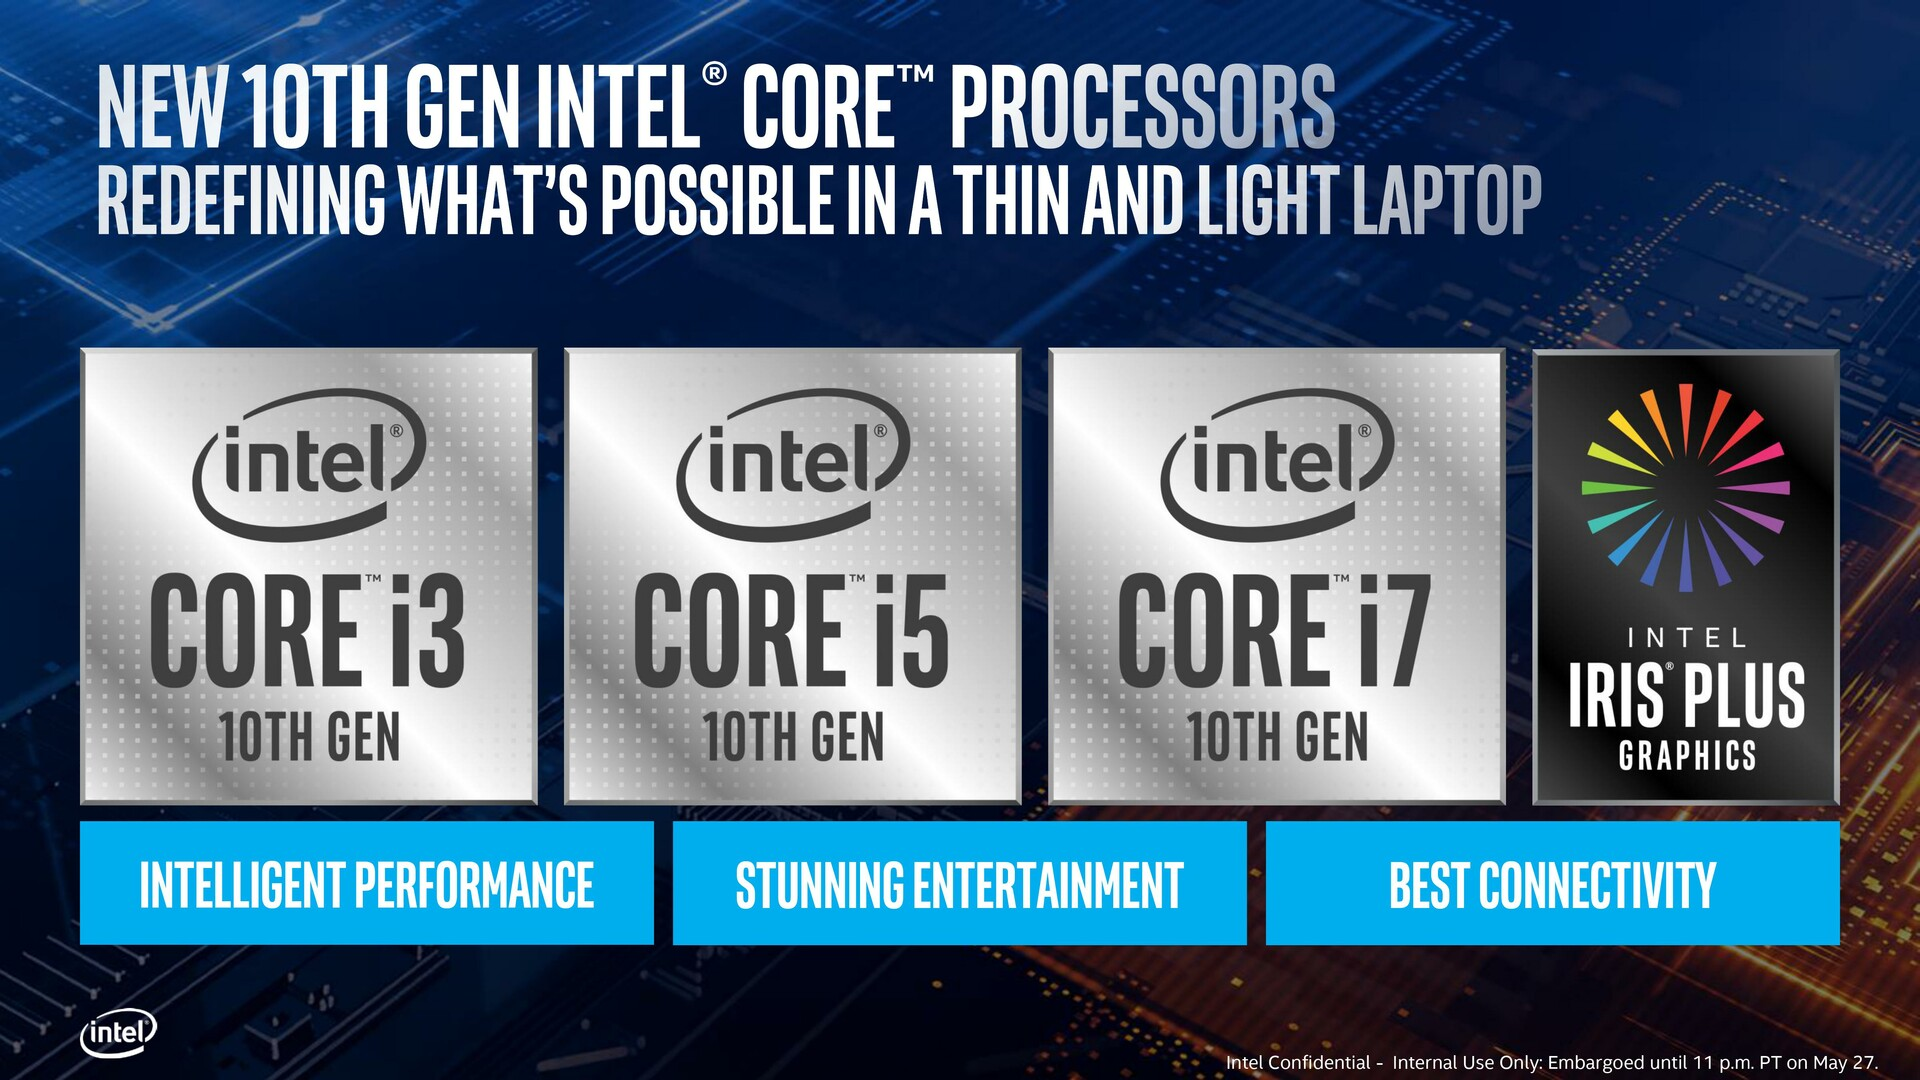 Intel announces 8 core i9-9900KS processor